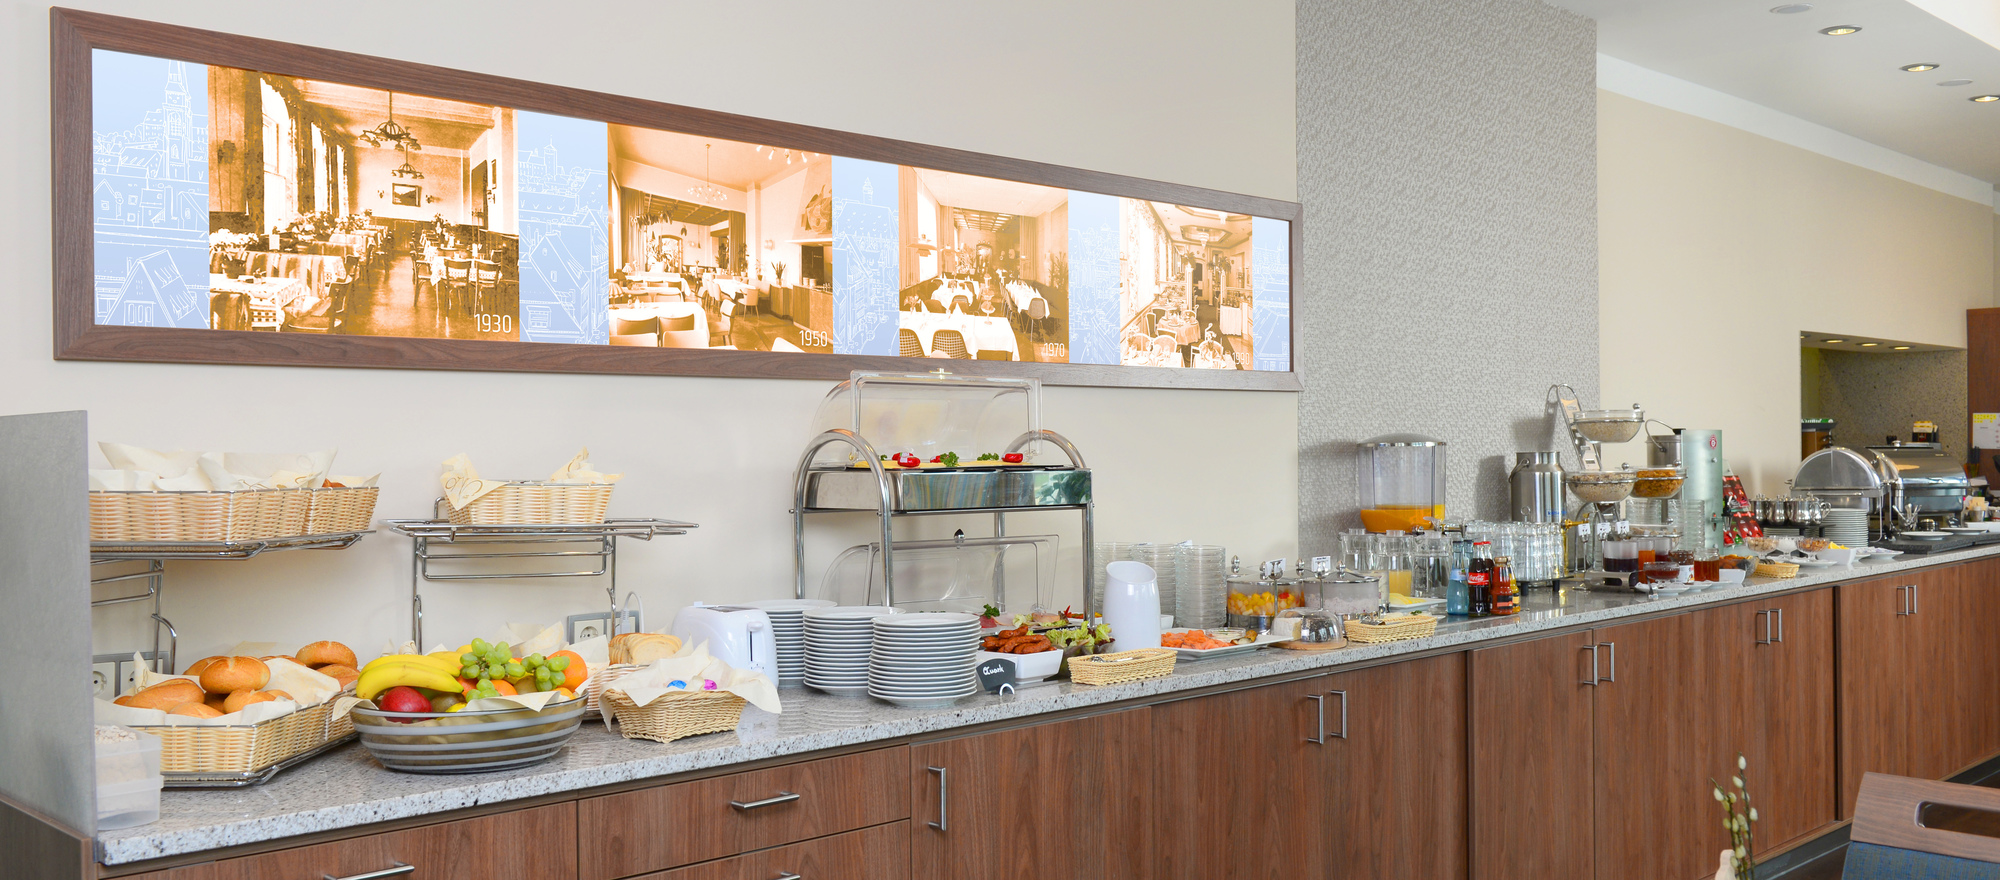 Enjoy a comprehensive breakfast buffet at the 4-star hotel Ringhotel Loew´s Merkur in Nuremberg